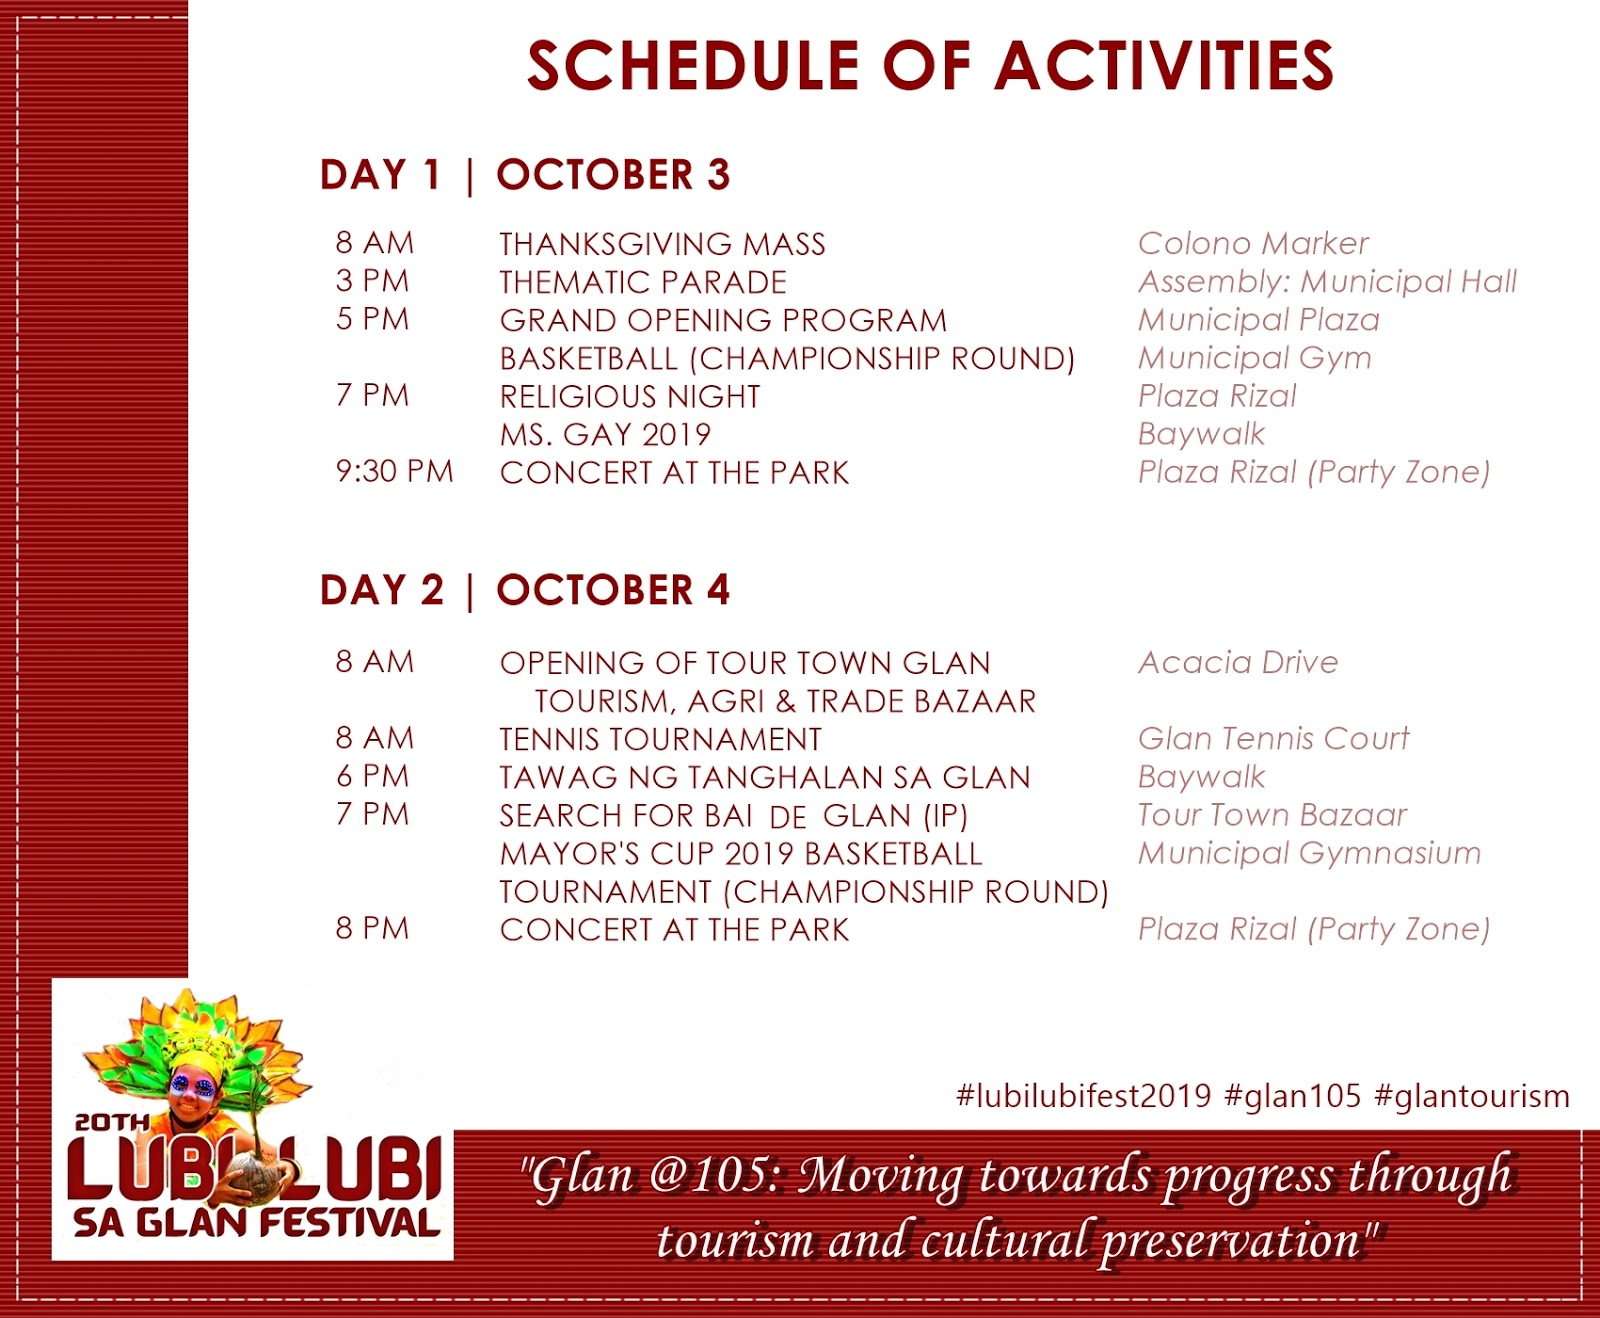 We're going to Lubi-lubi sa Glan Festival this October!